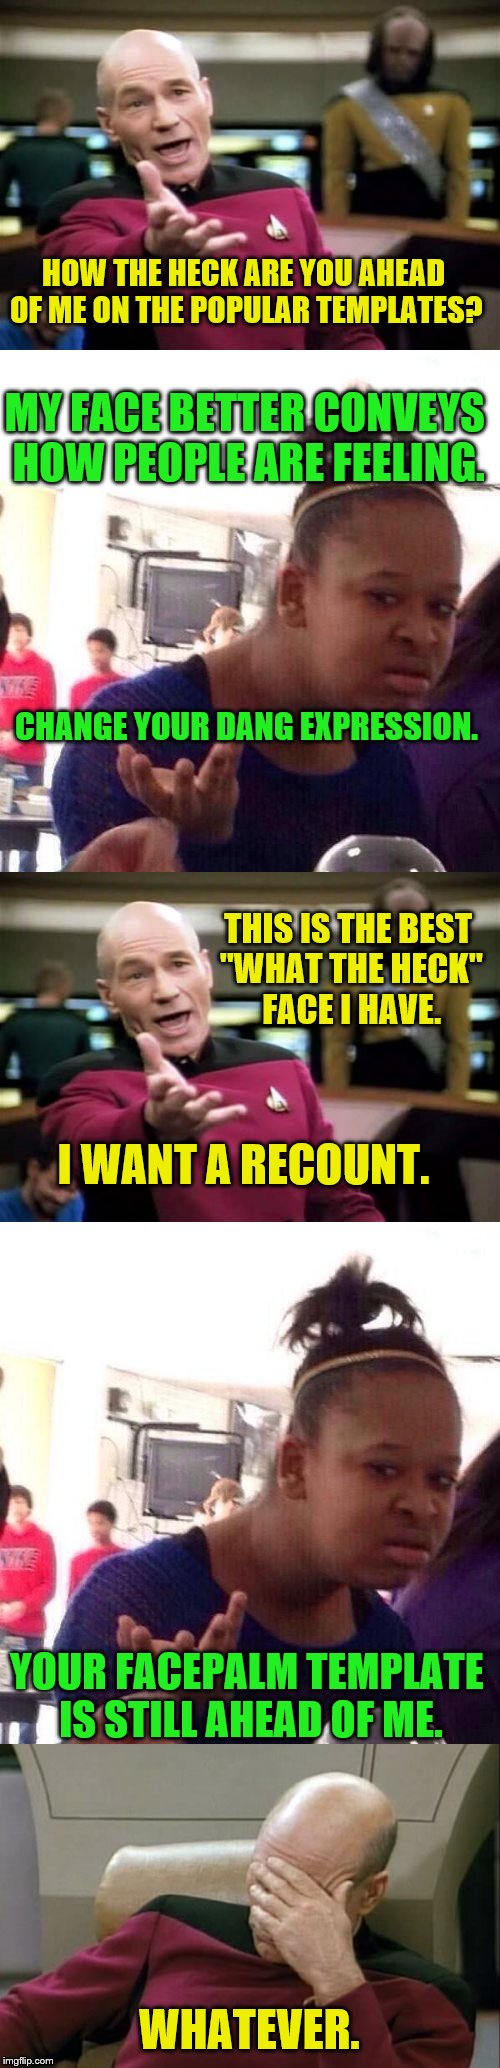 "Picard vs. Black Girl Wat (I promise this is way smaller.)  :-) |  HOW THE HECK ARE YOU AHEAD OF ME ON THE POPULAR TEMPLATES? MY FACE BETTER CONVEYS HOW PEOPLE ARE FEELING. CHANGE YOUR DANG EXPRESSION. THIS IS THE BEST ""WHAT THE HECK"" FACE I HAVE. I WANT A RECOUNT. YOUR FACEPALM TEMPLATE IS STILL AHEAD OF ME. WHATEVER. 